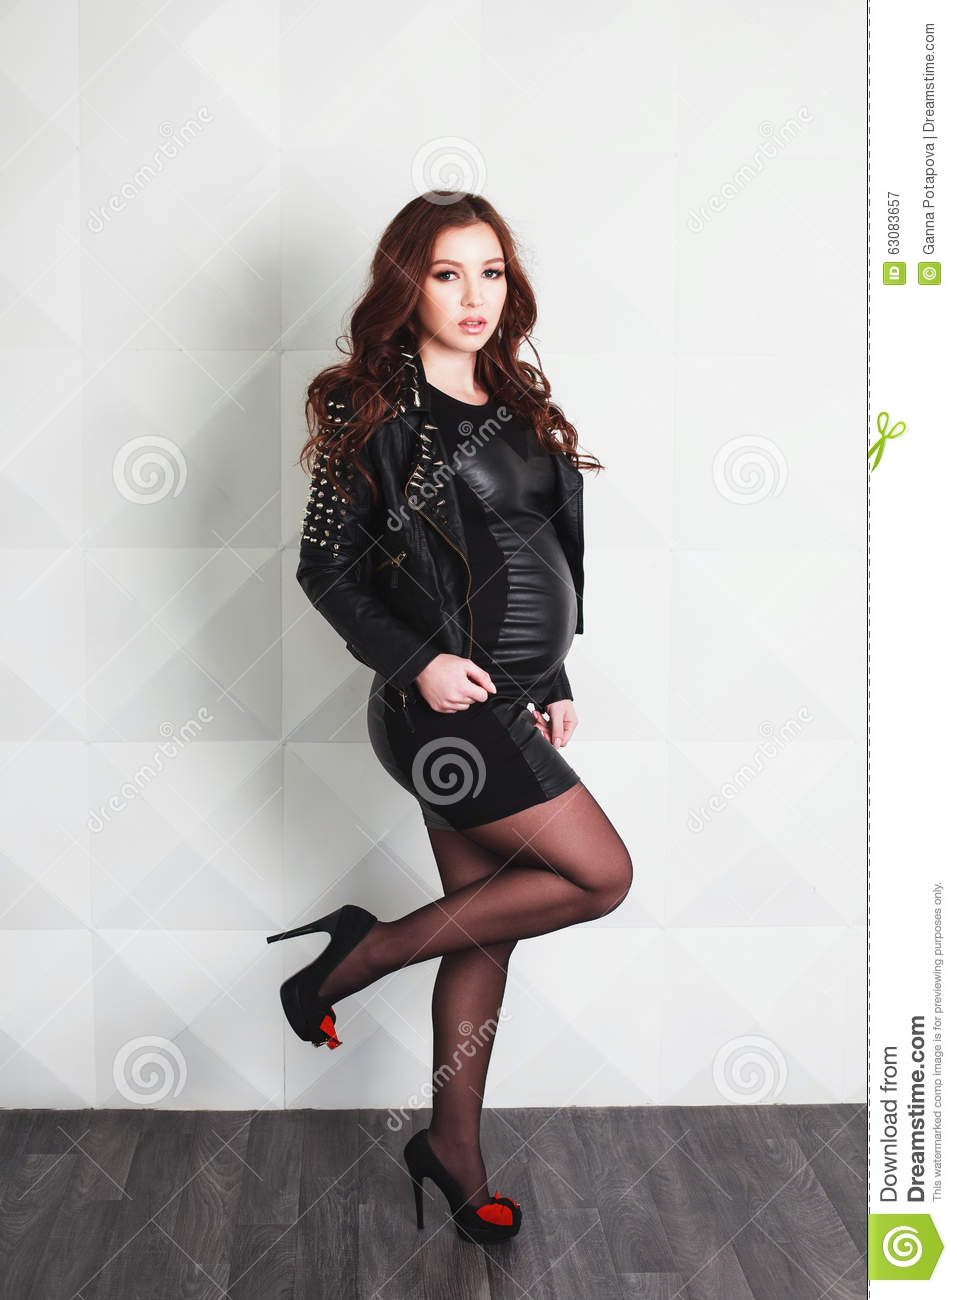 Pregnant Woman In Rock Style Stock Photo - Image: 63083657